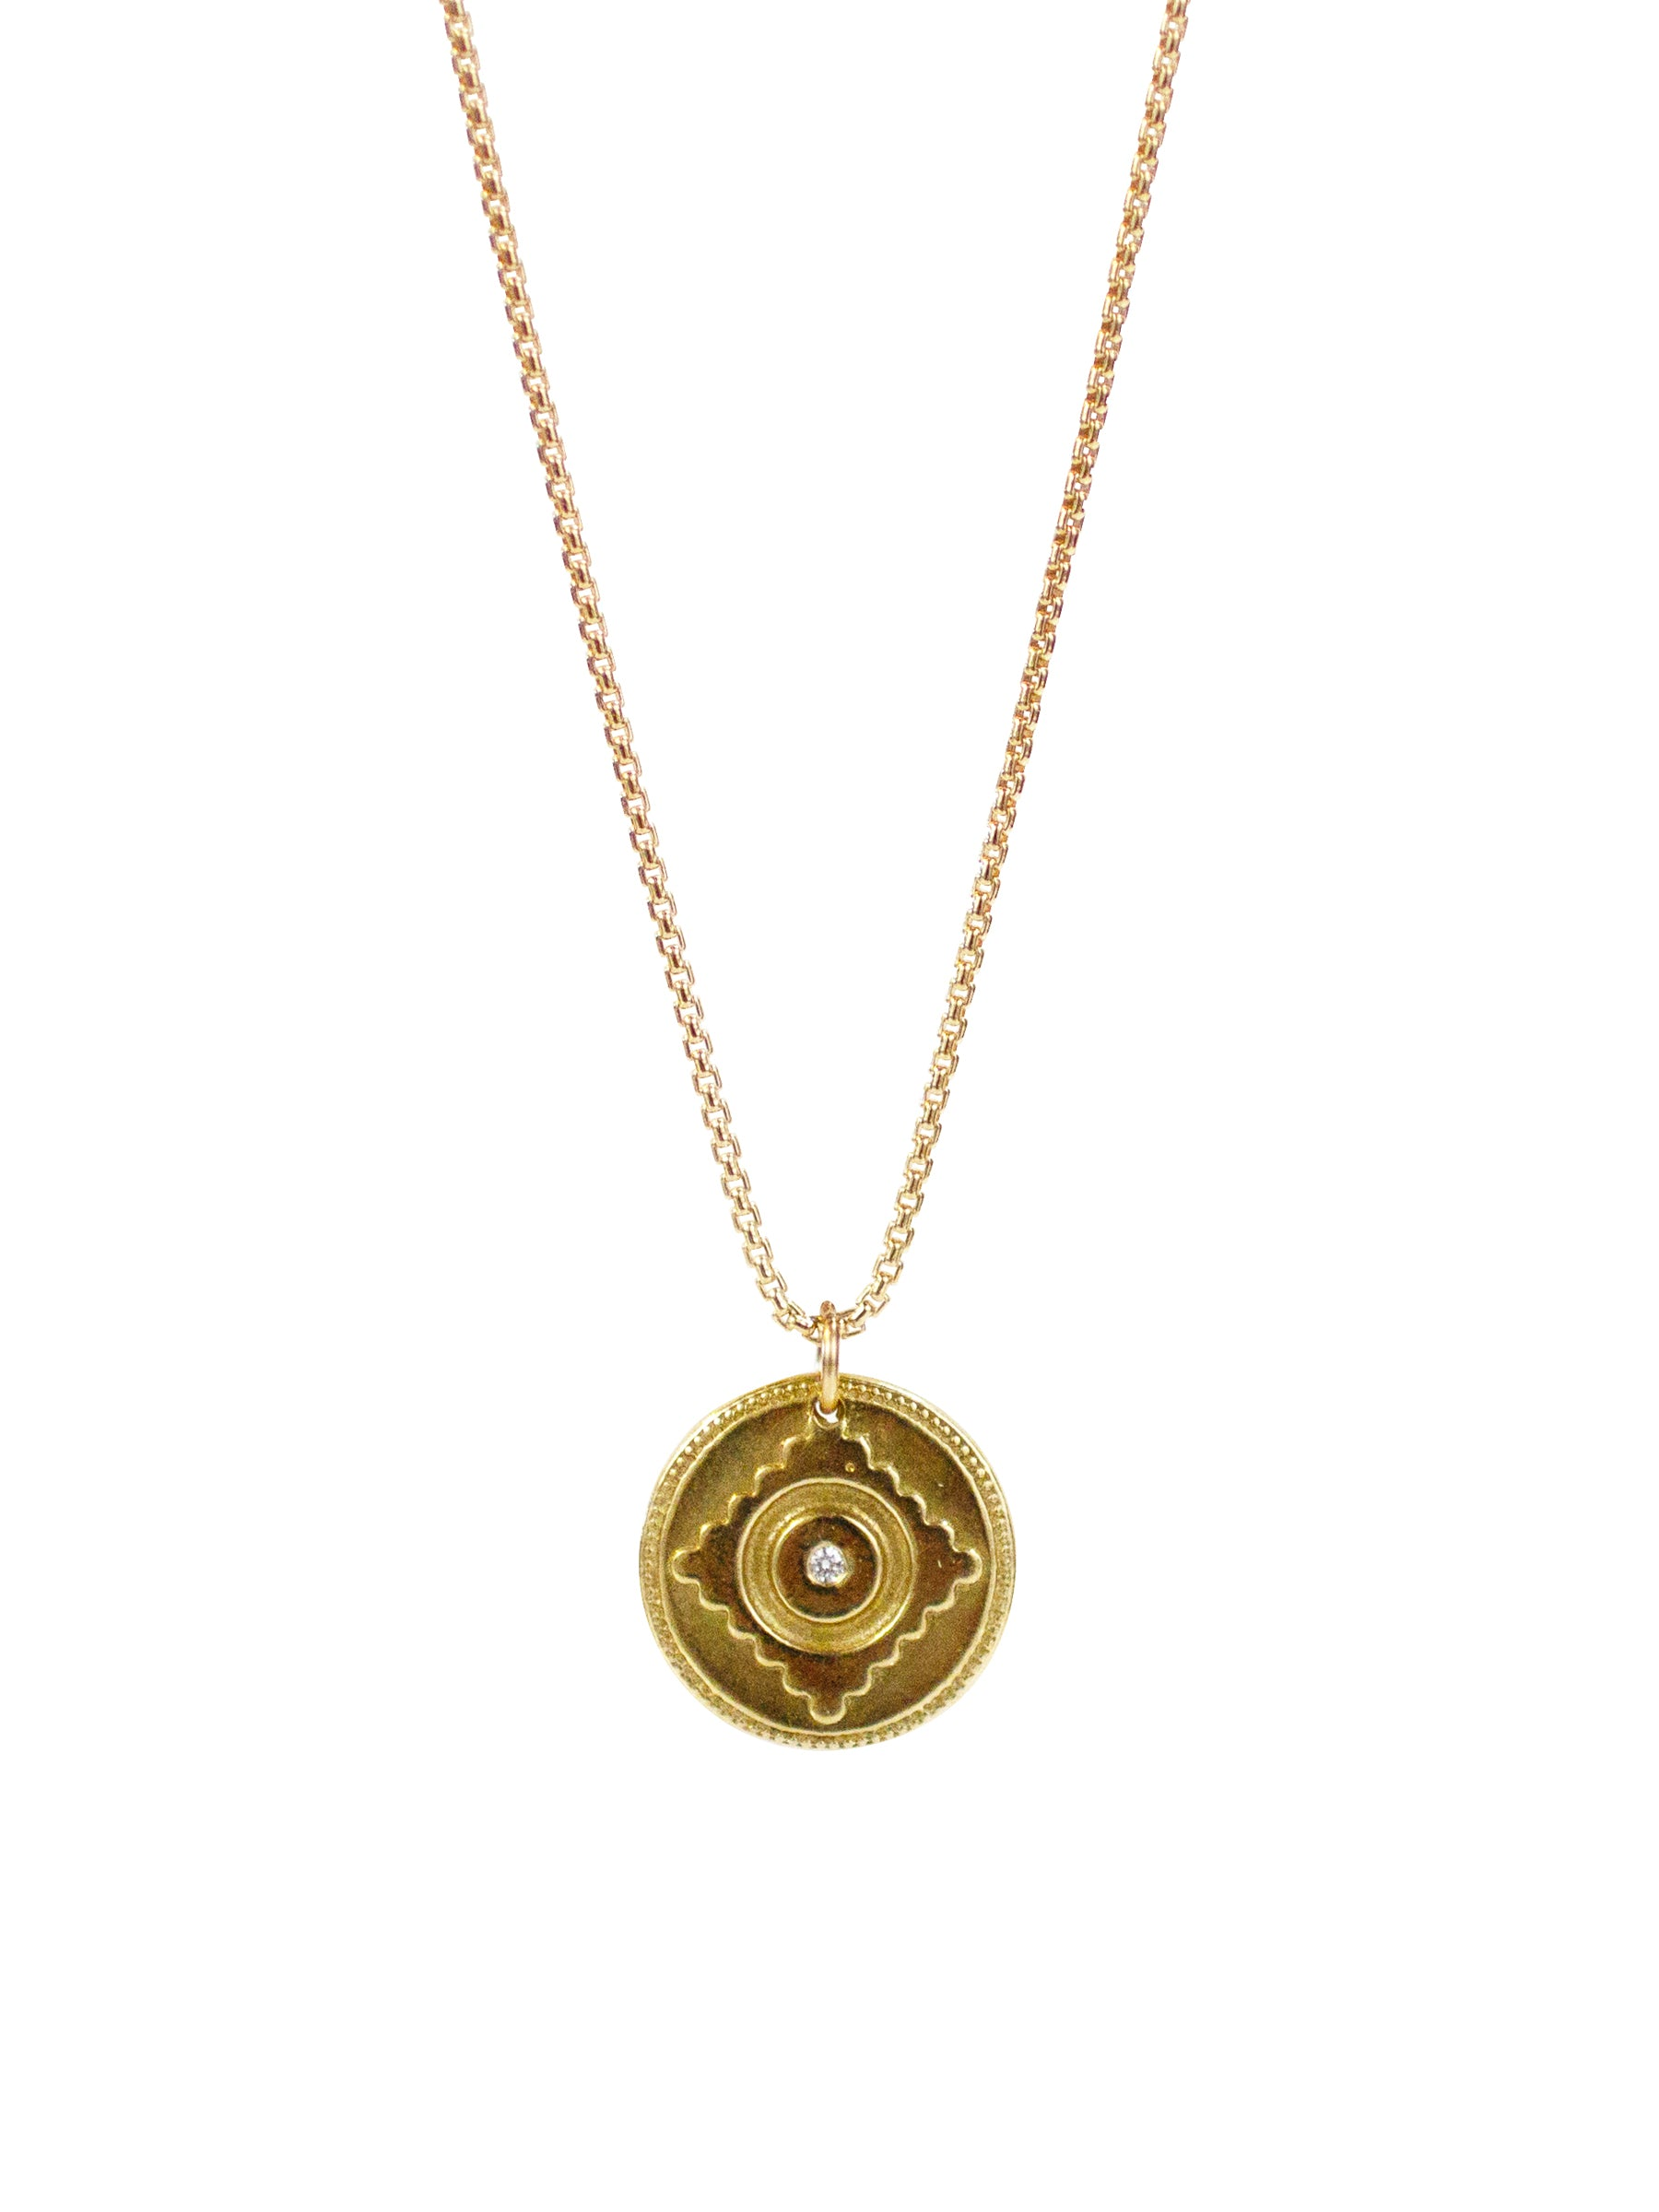 "Leela Necklace, divine grace, yellow bronze or sterling silver ""Leela"" pendant with 14k gold filled or sterling silver rolled box chain."